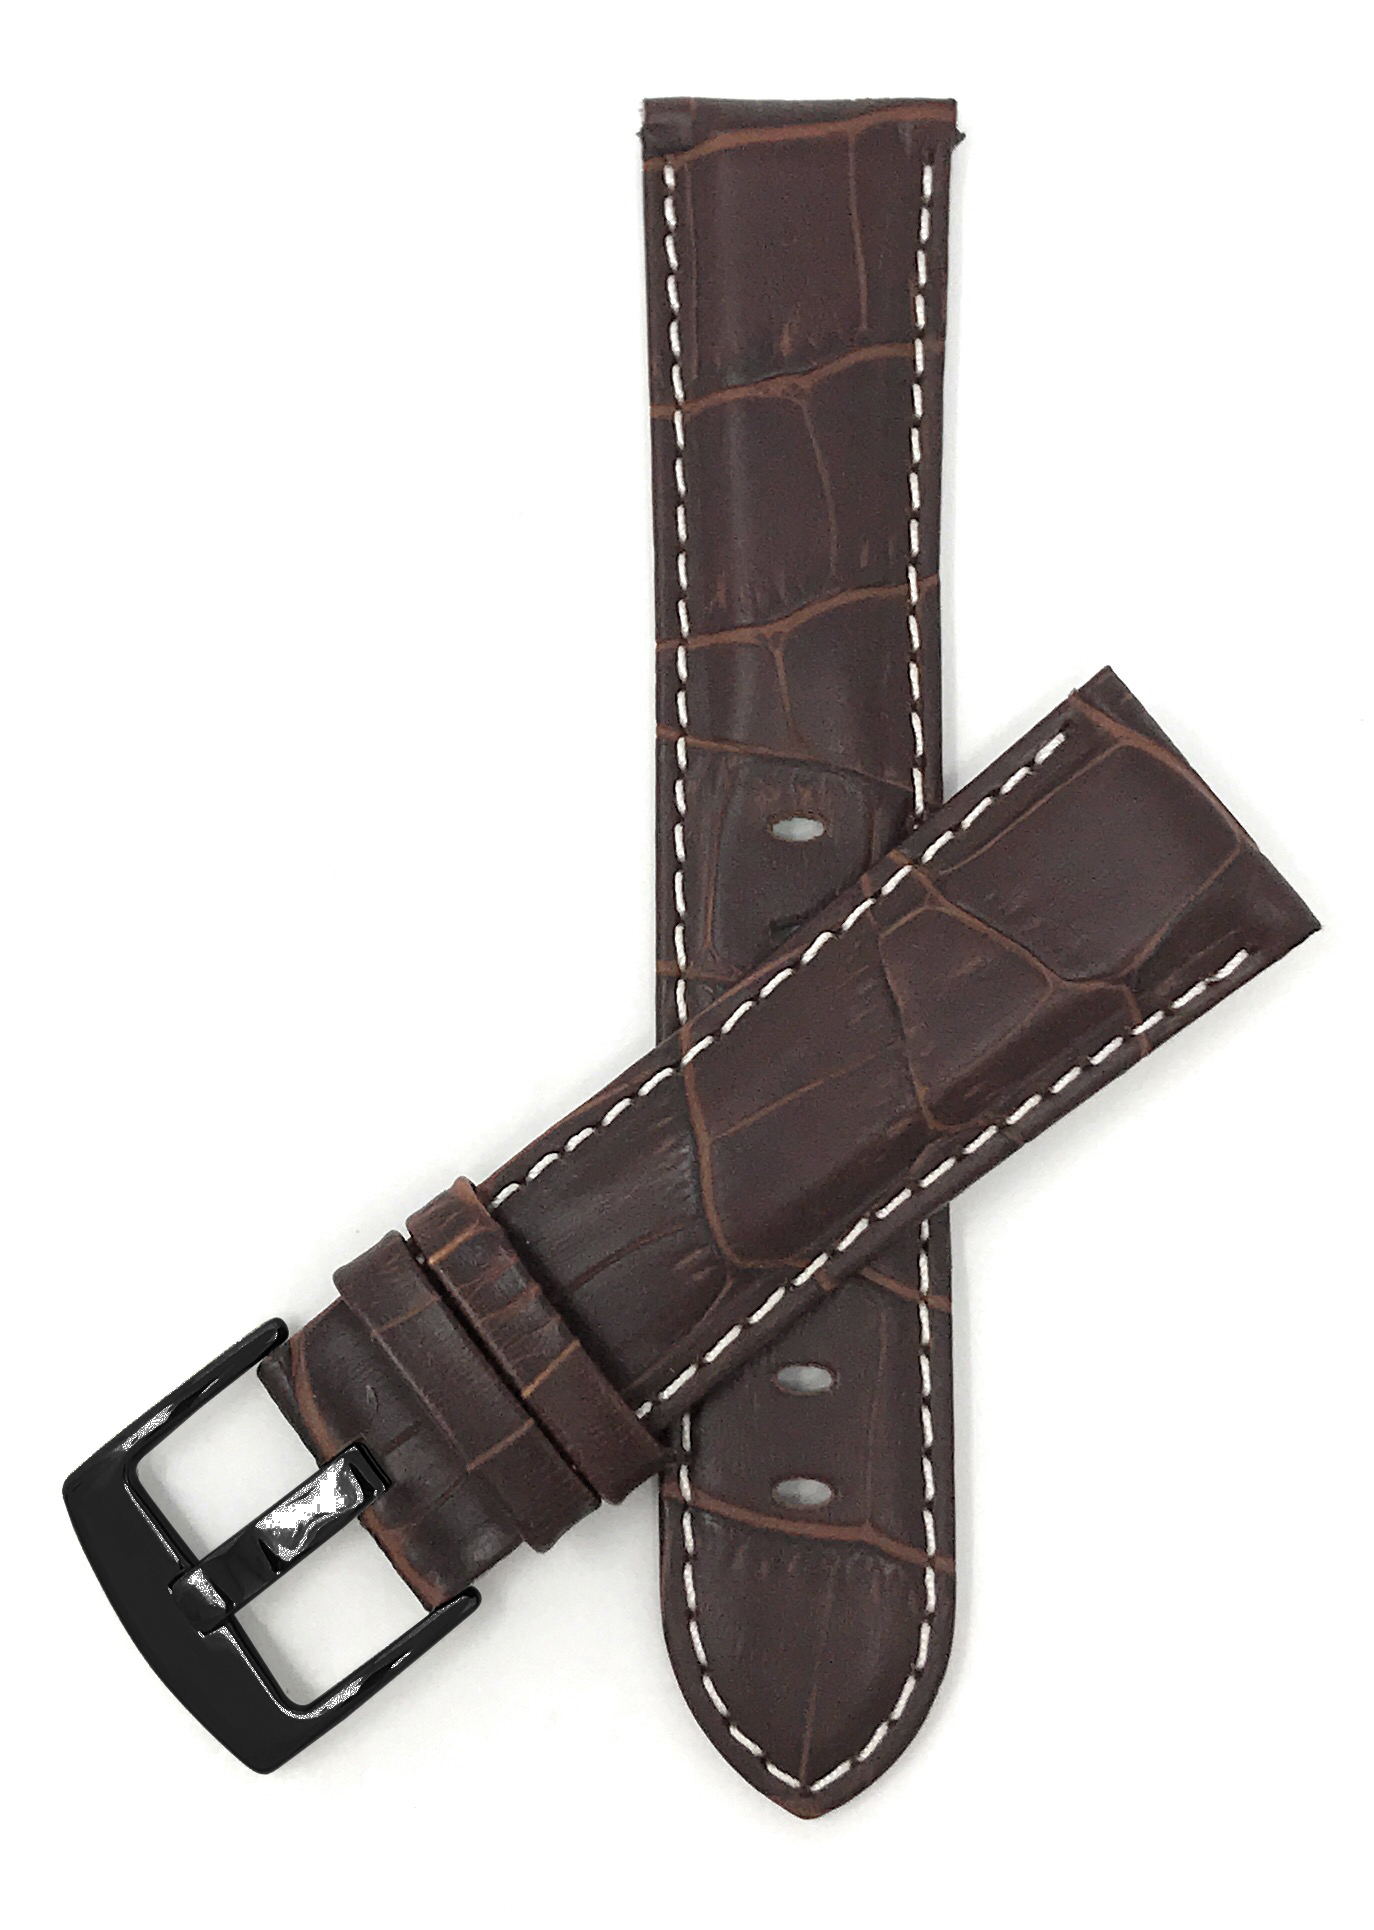 Bandini-Mens-Watch-Band-Alligator-Style-Leather-Strap-18mm-26mm-15-Colors thumbnail 60